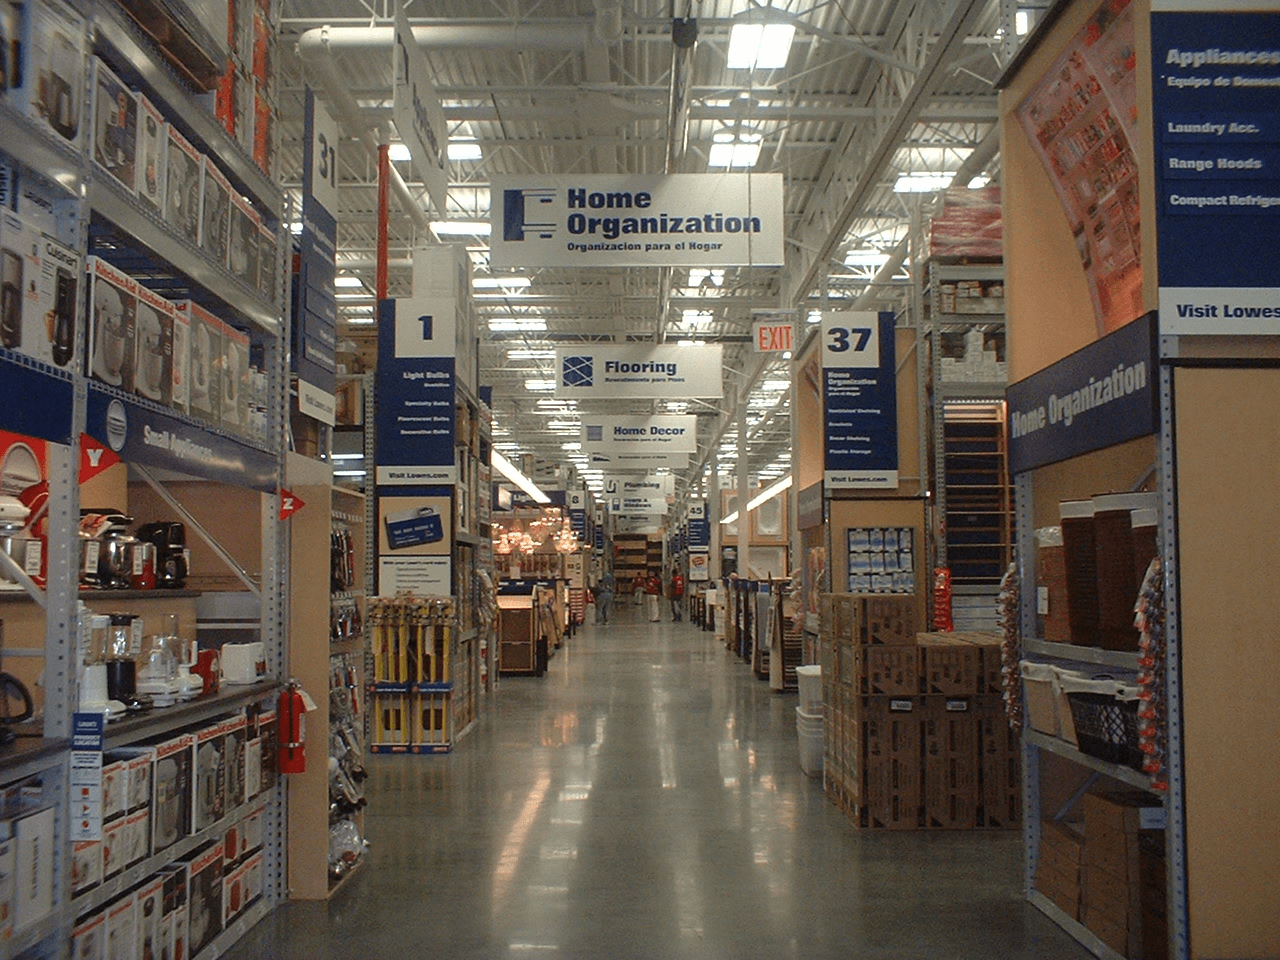 Lowes_Store